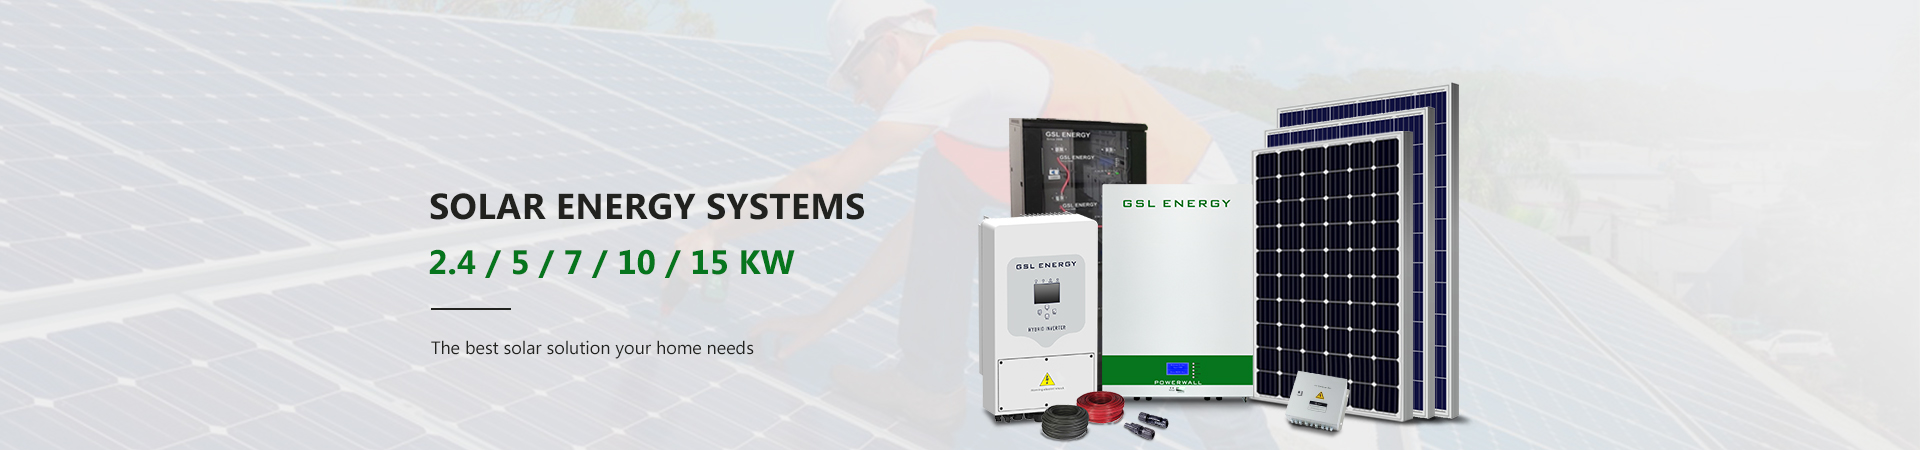 news-GSL ENERGY-GSL ENERGY successfully offers power storage wall 30kwh lifepo4 battery solution to -2